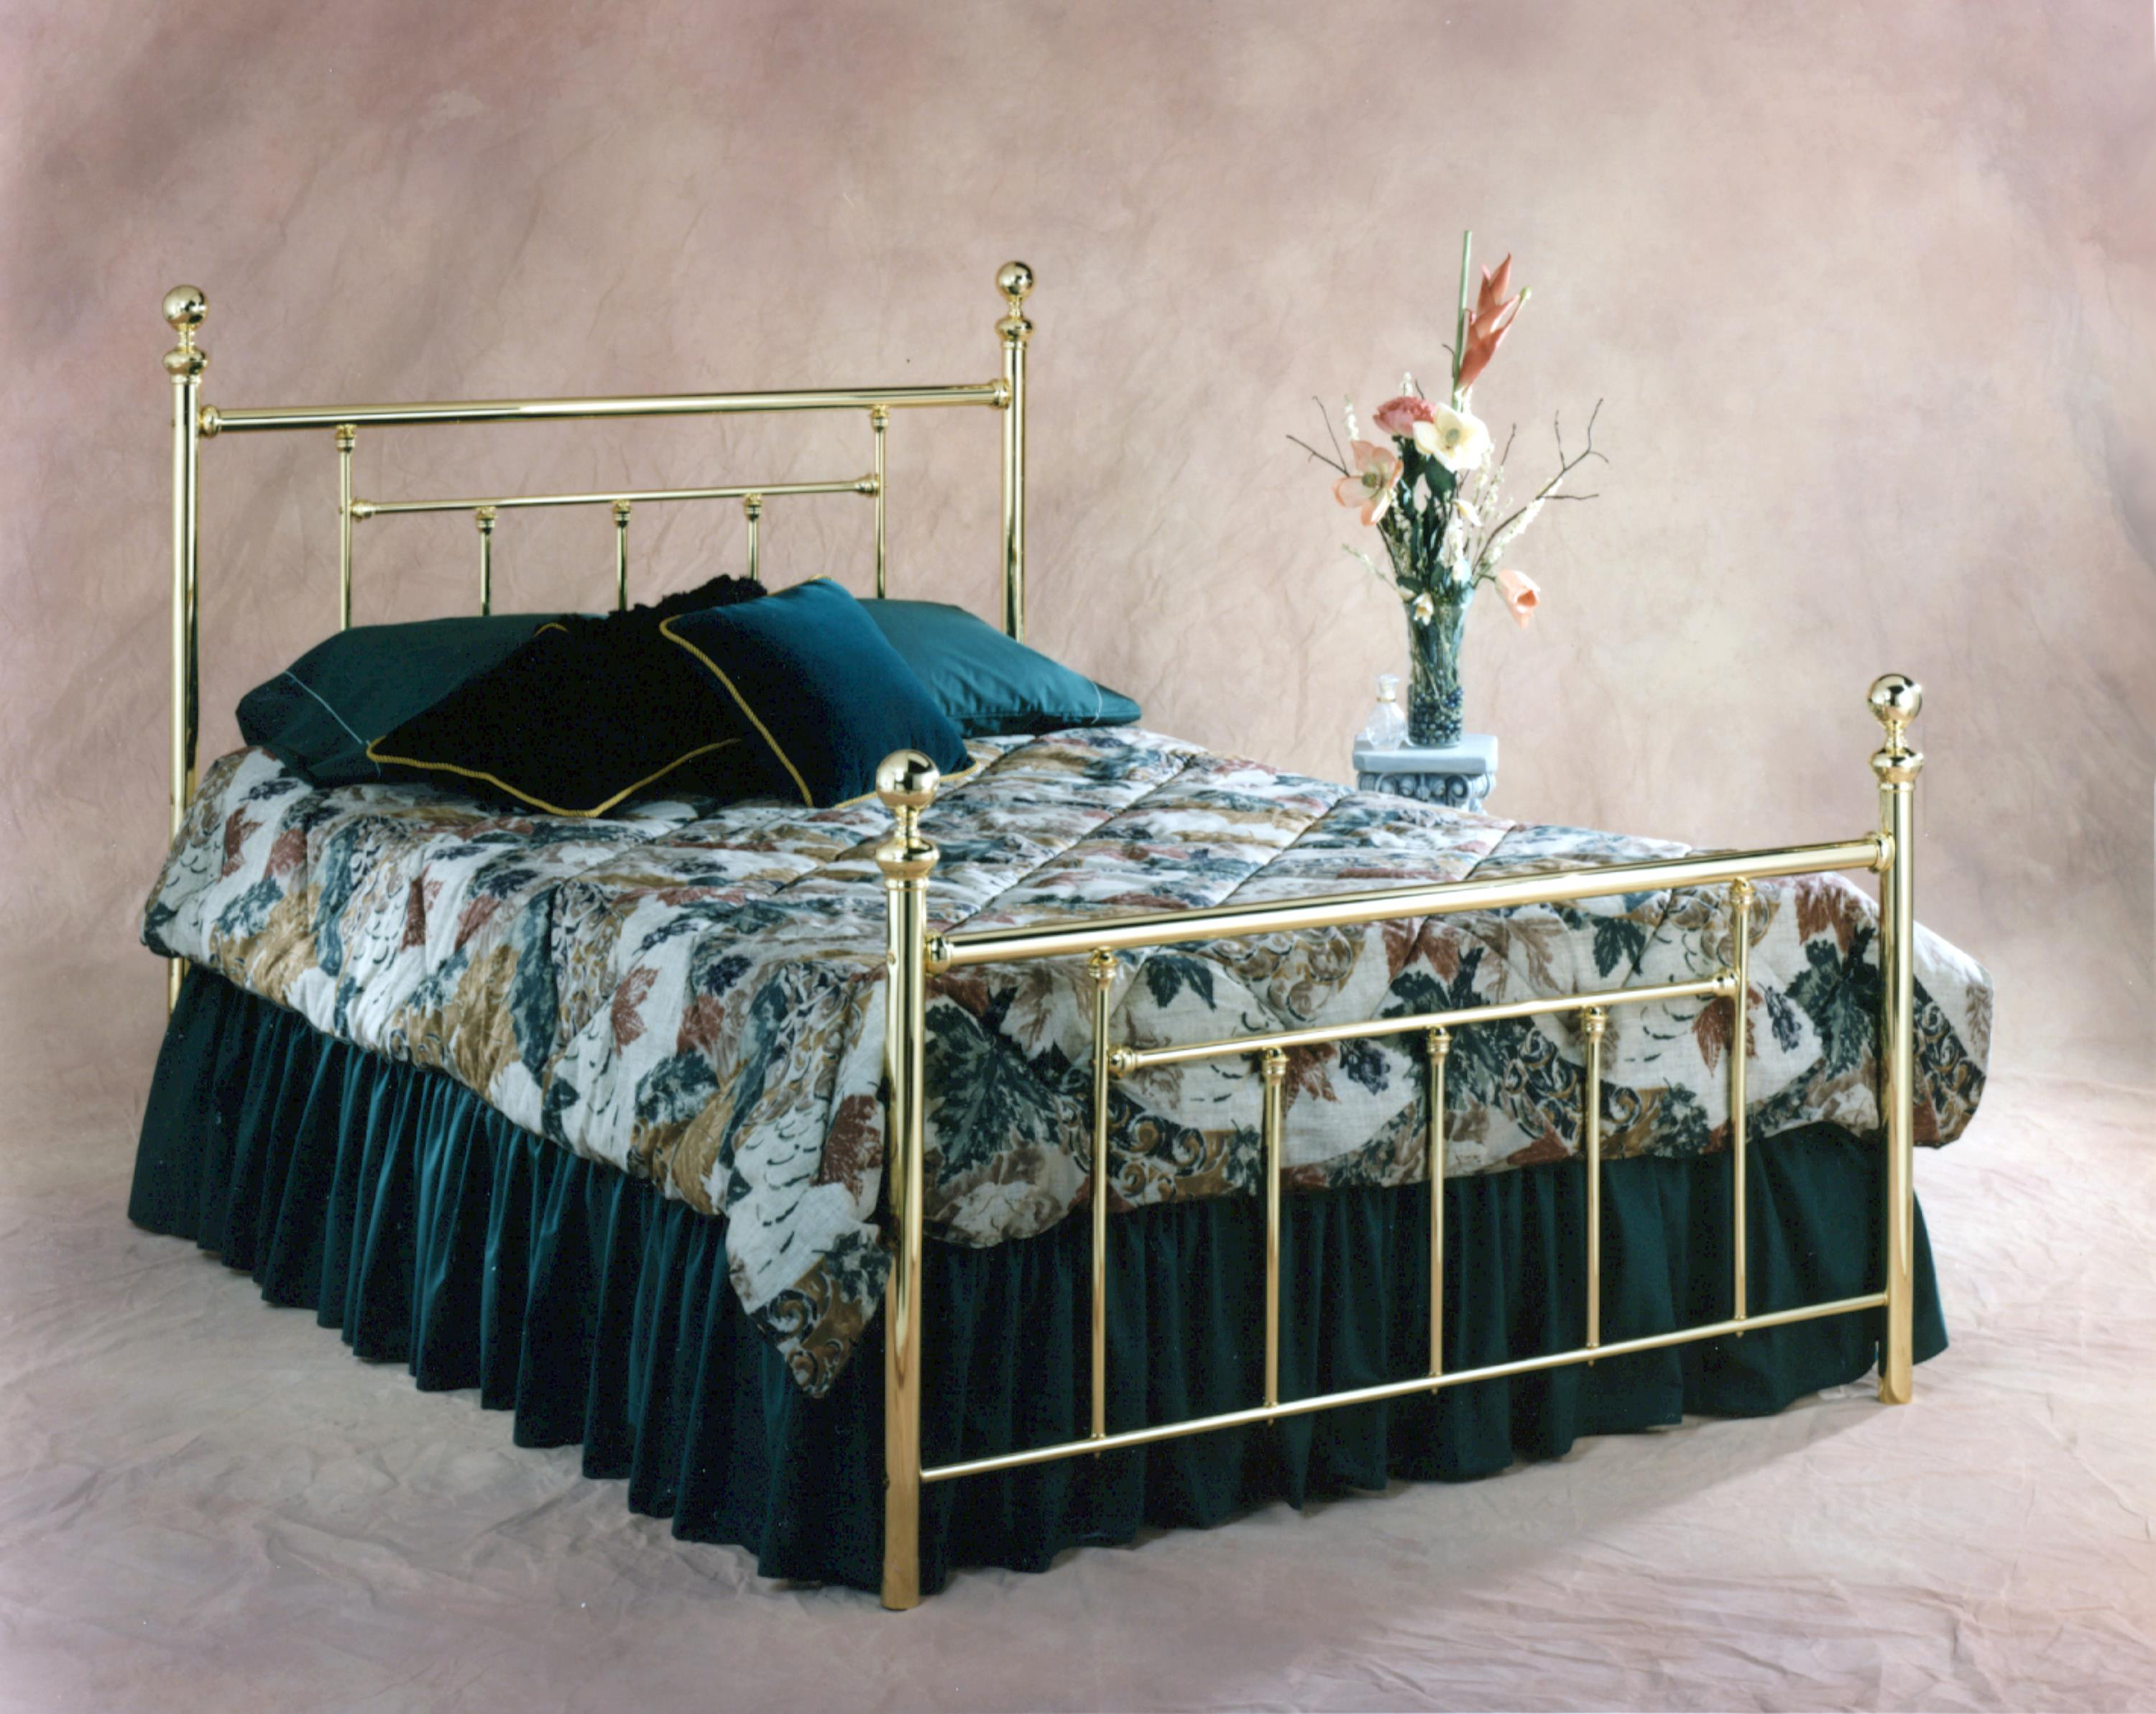 Hillsdale Metal Beds Queen Headboard and Footboard Bed - Item Number: 1038BQR2